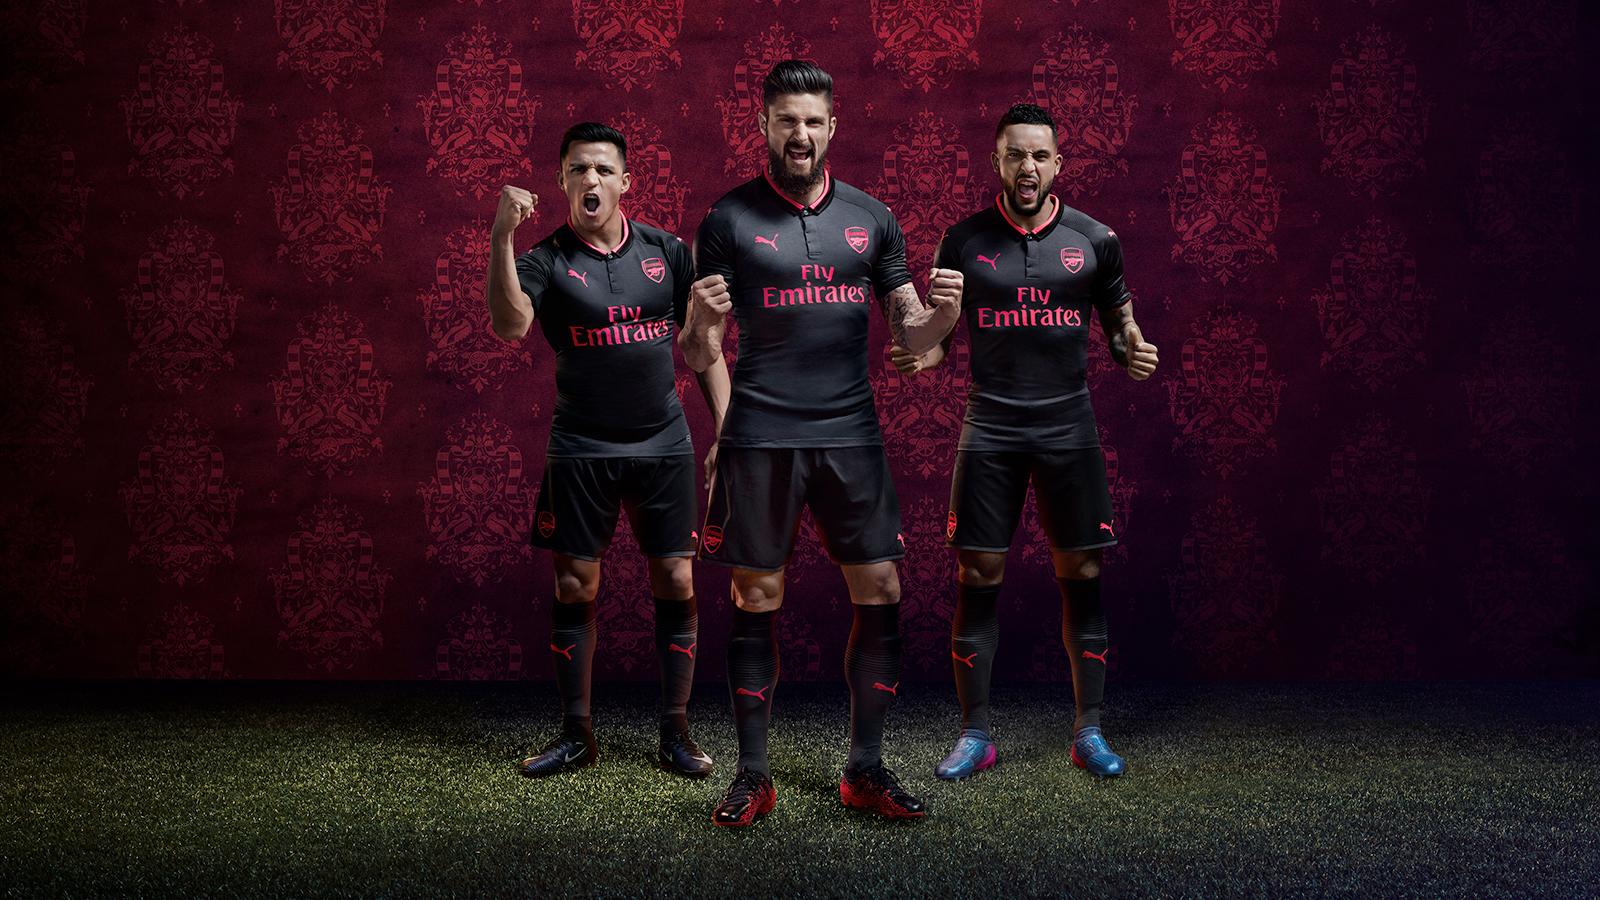 Arsenal 2017/18 third kit now on sale | News | Arsenal.com